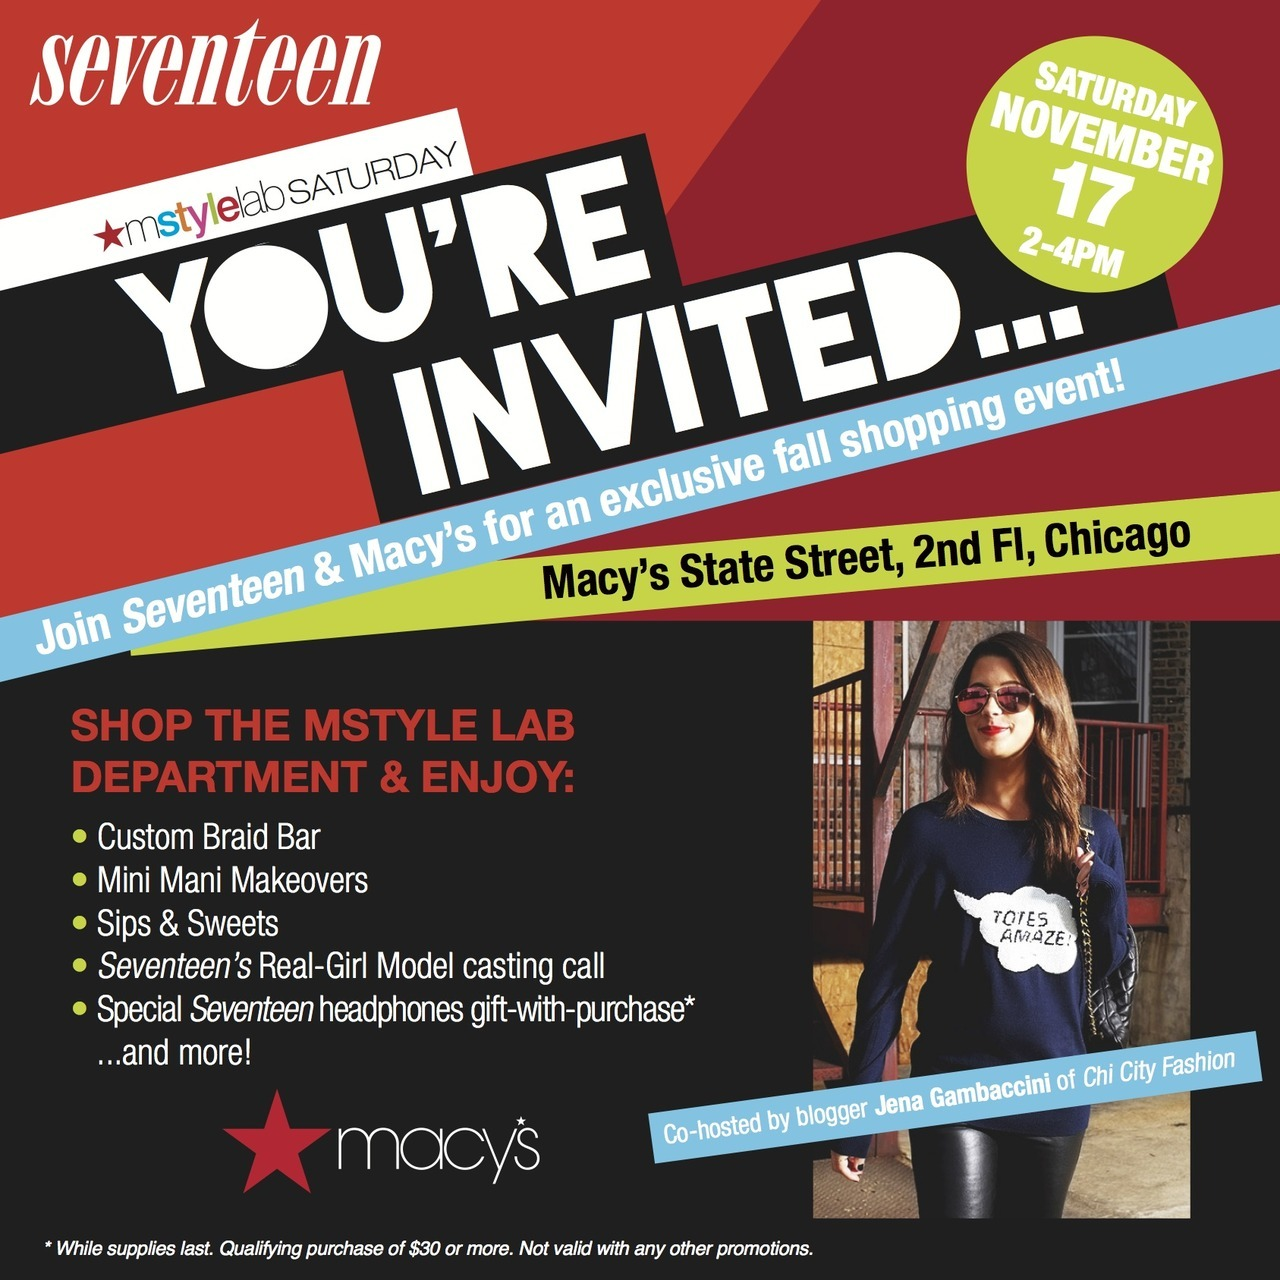 Hope you'll join Seventeen Magazine and I at Macy's on State Street this Saturday. Details on ChiCityFashion.